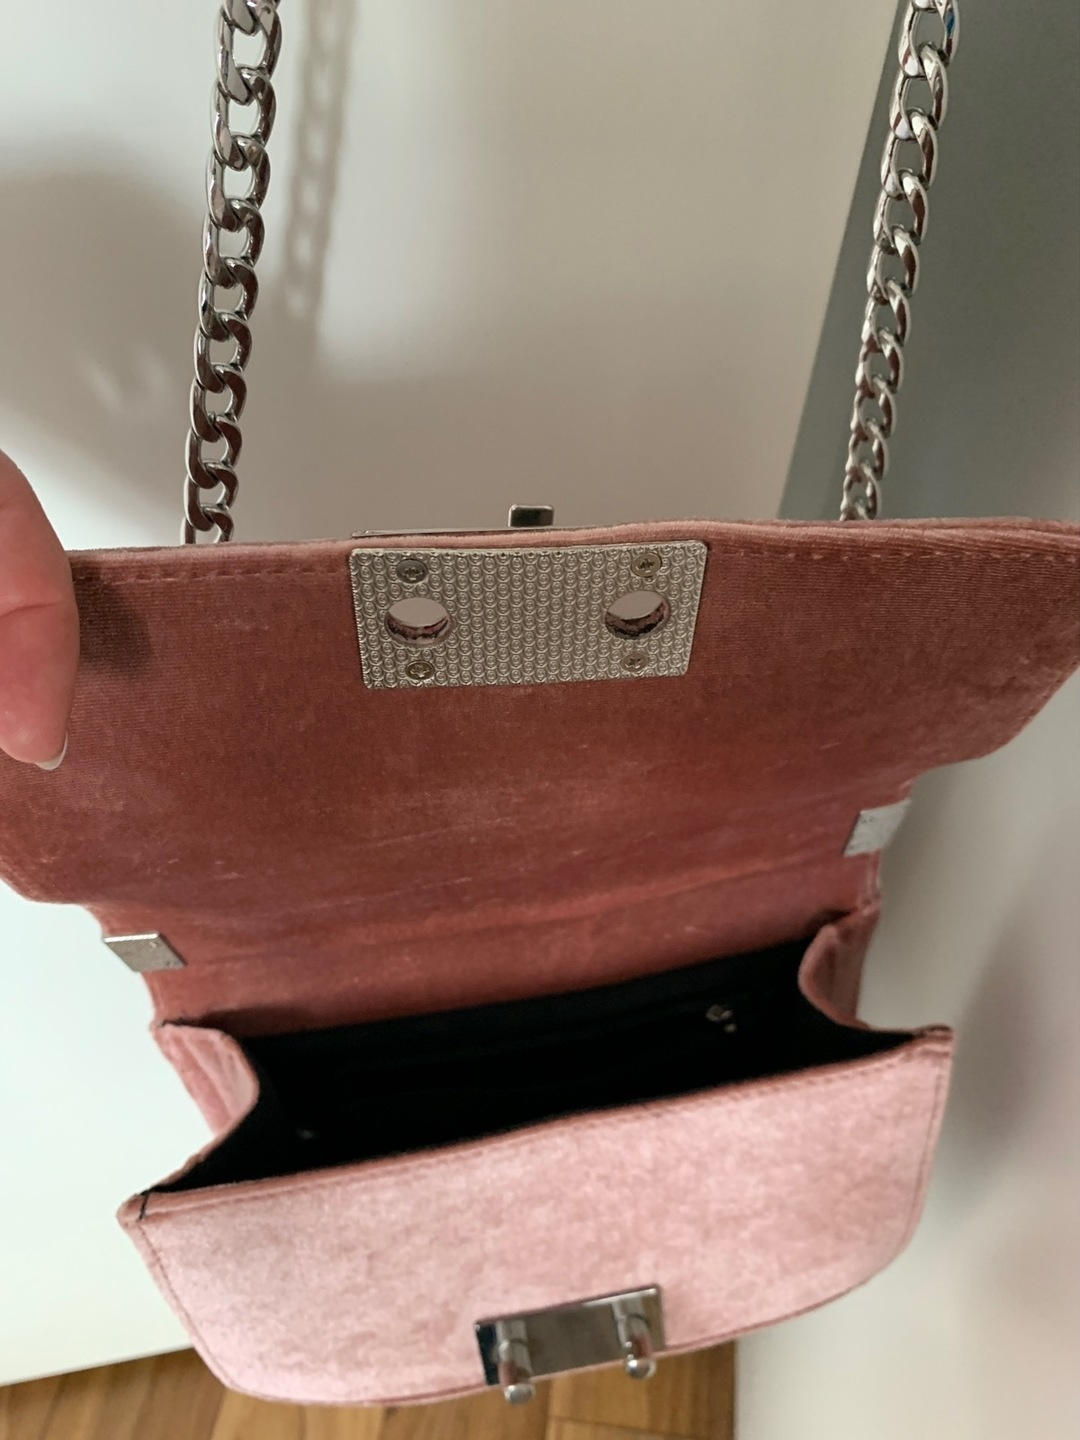 Women's bags & purses - GINA TRICOT photo 2